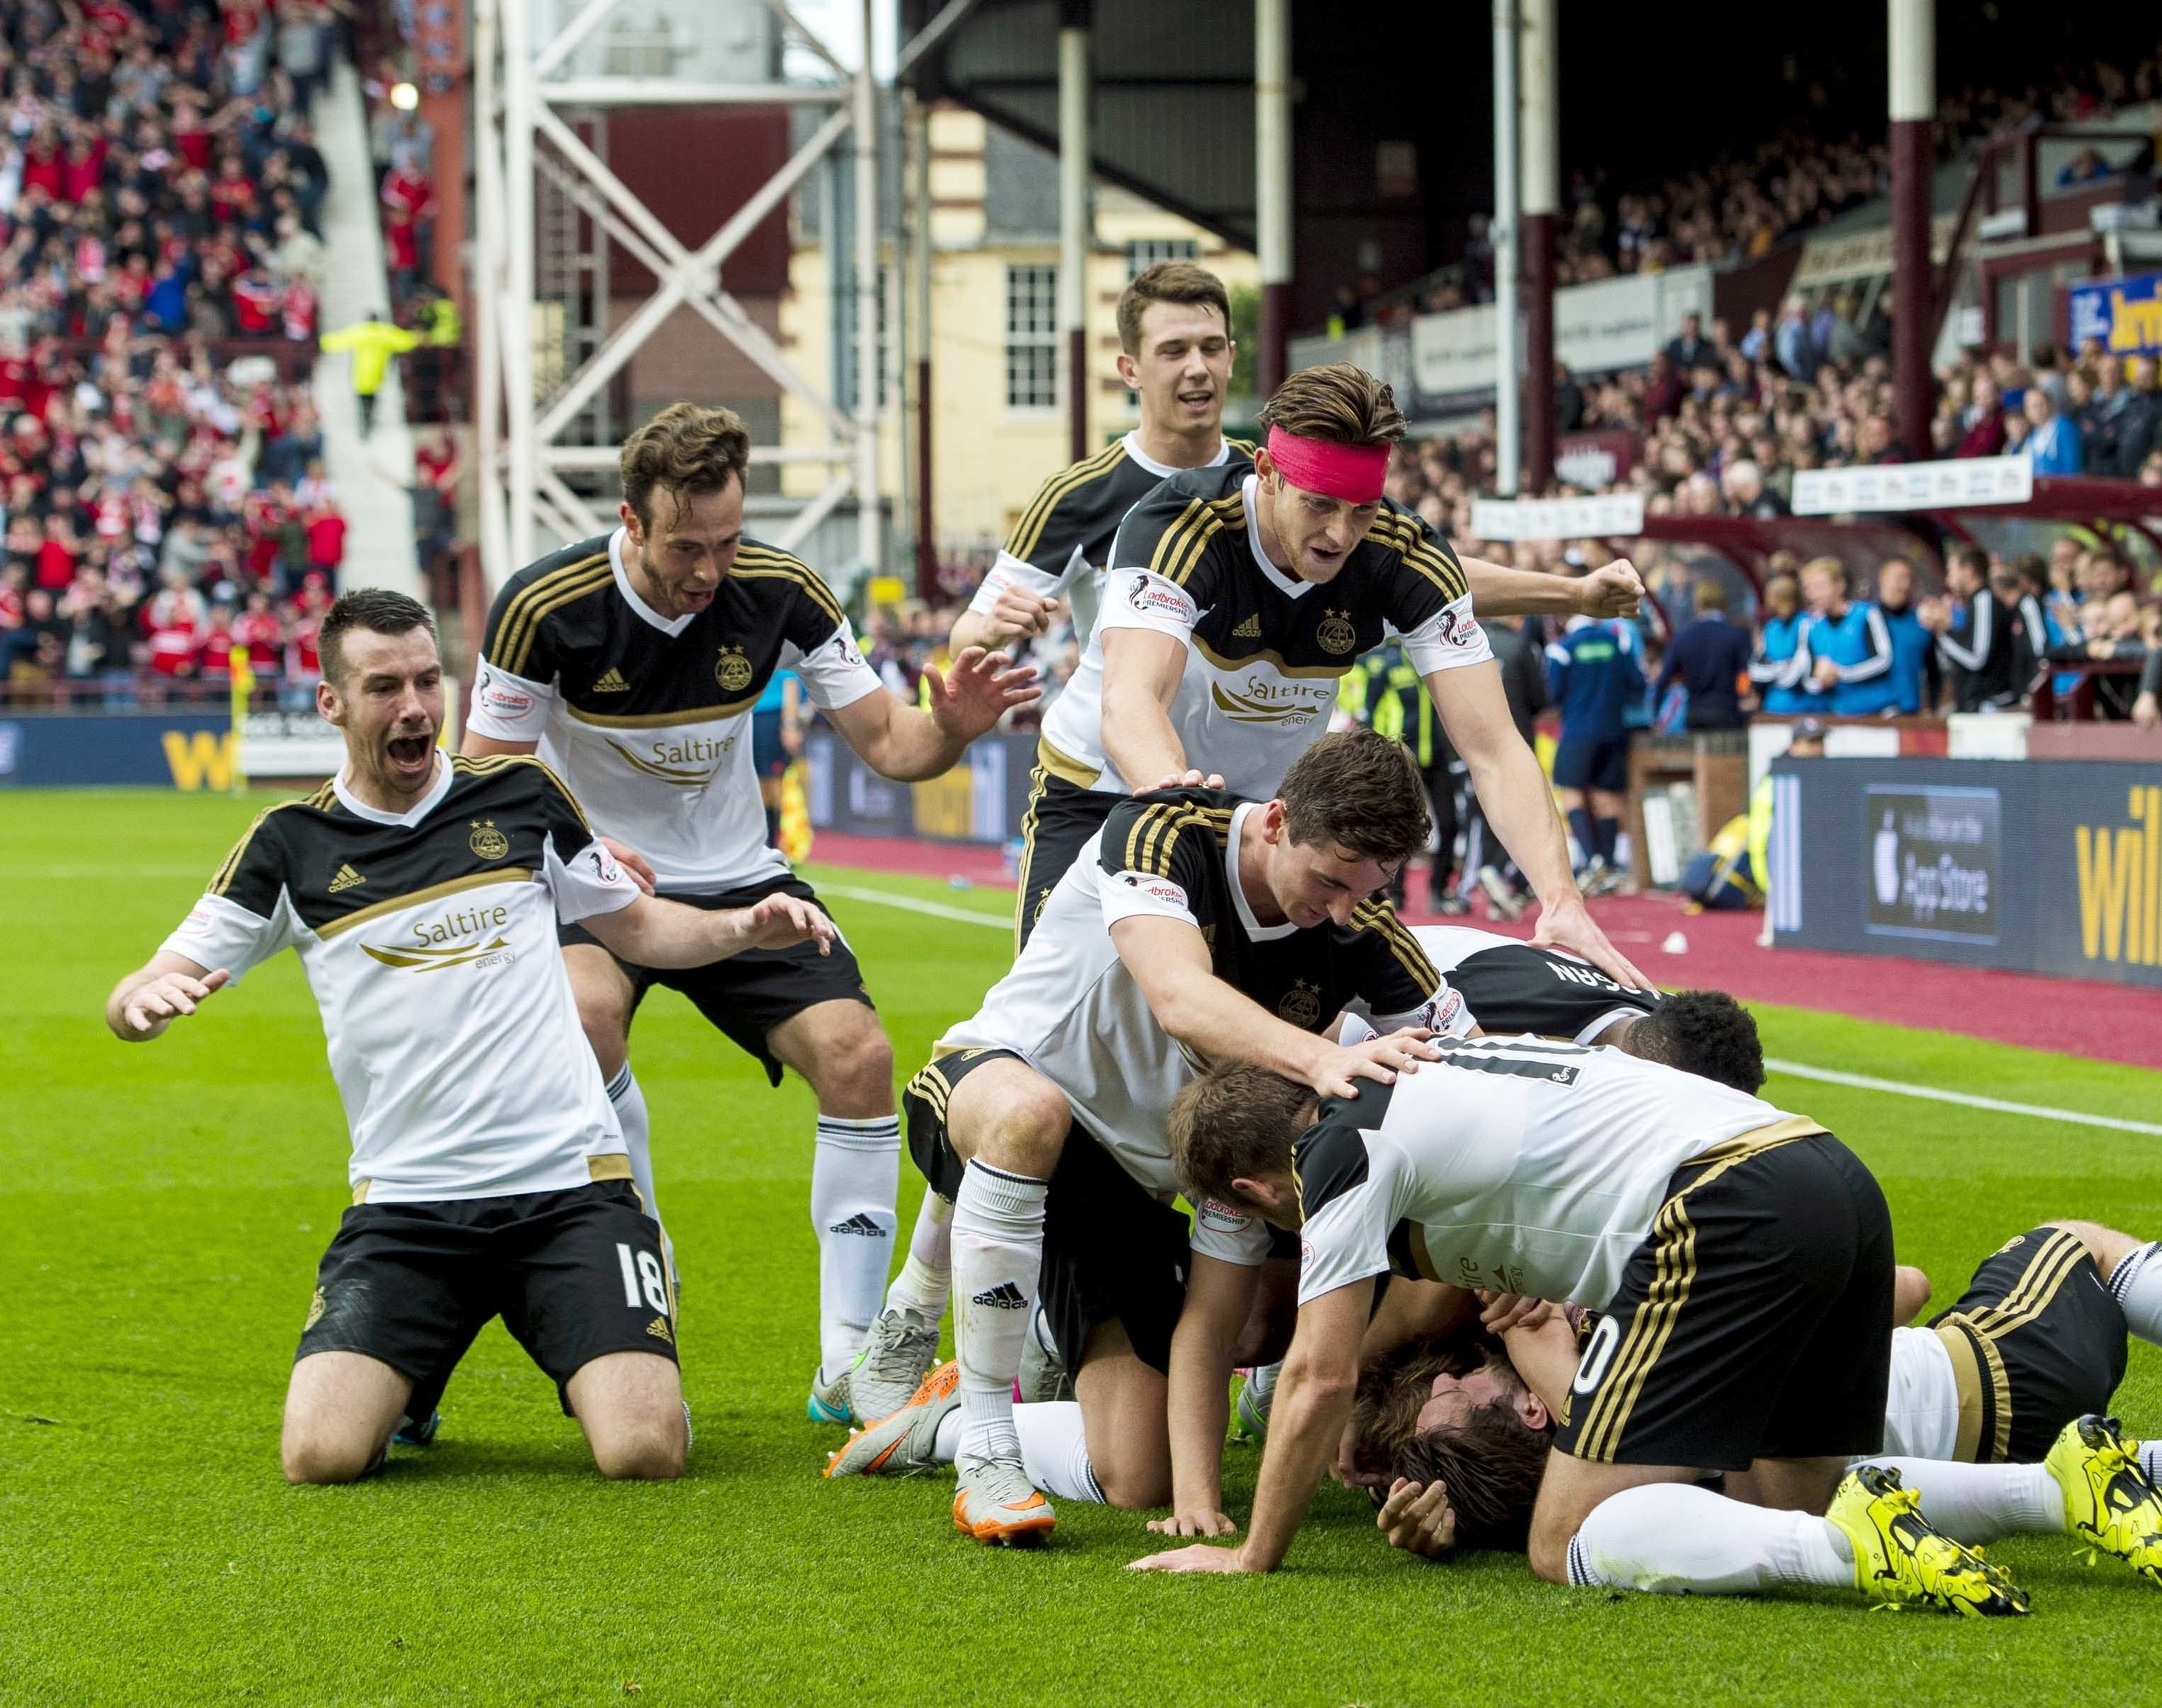 Aberdeen players surround goalscorer David Goodwillie as he puts his side 3-0 to the good